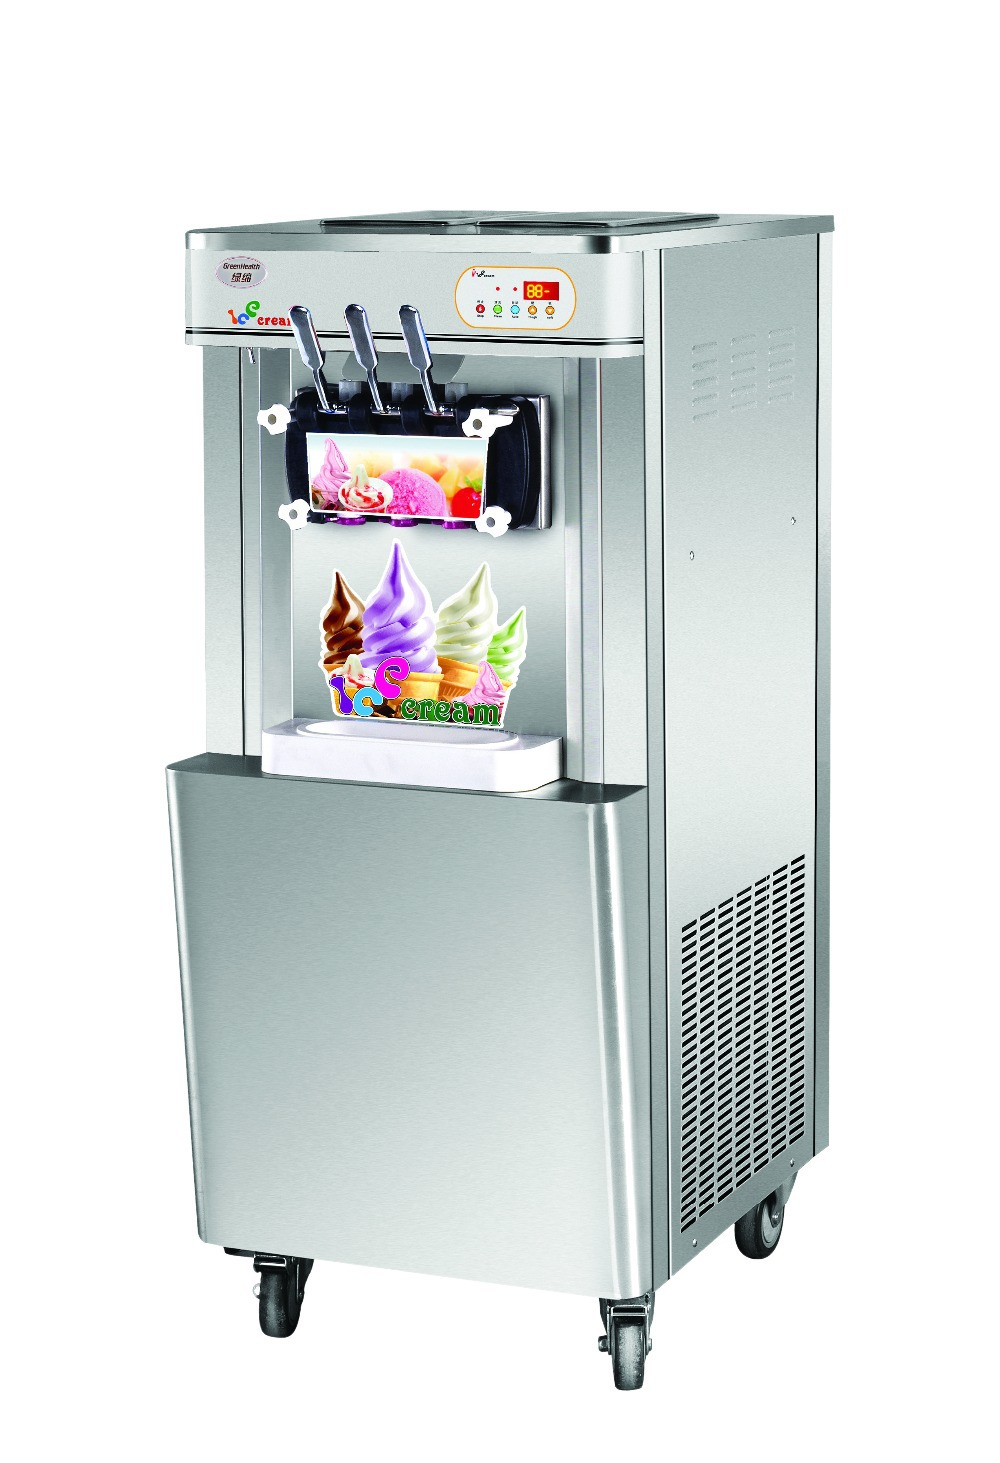 Super quality 25L free standing Ice cream making machine commercial soft ice cream maker with rainbow system and moving wheel